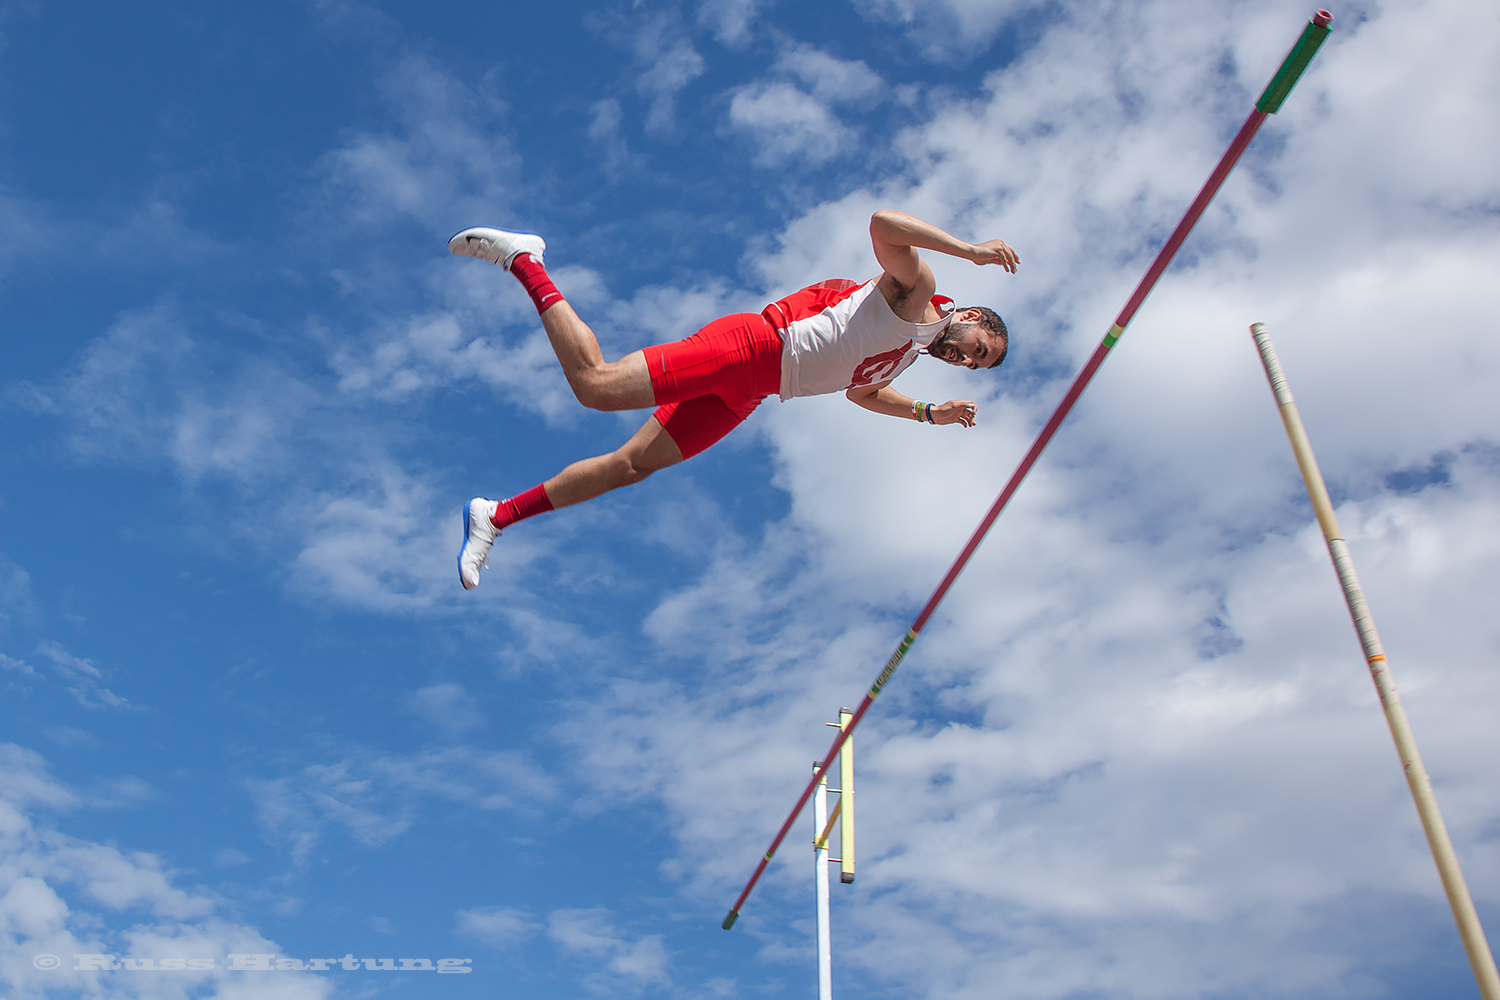 A pole vaulter seems suspended in air.